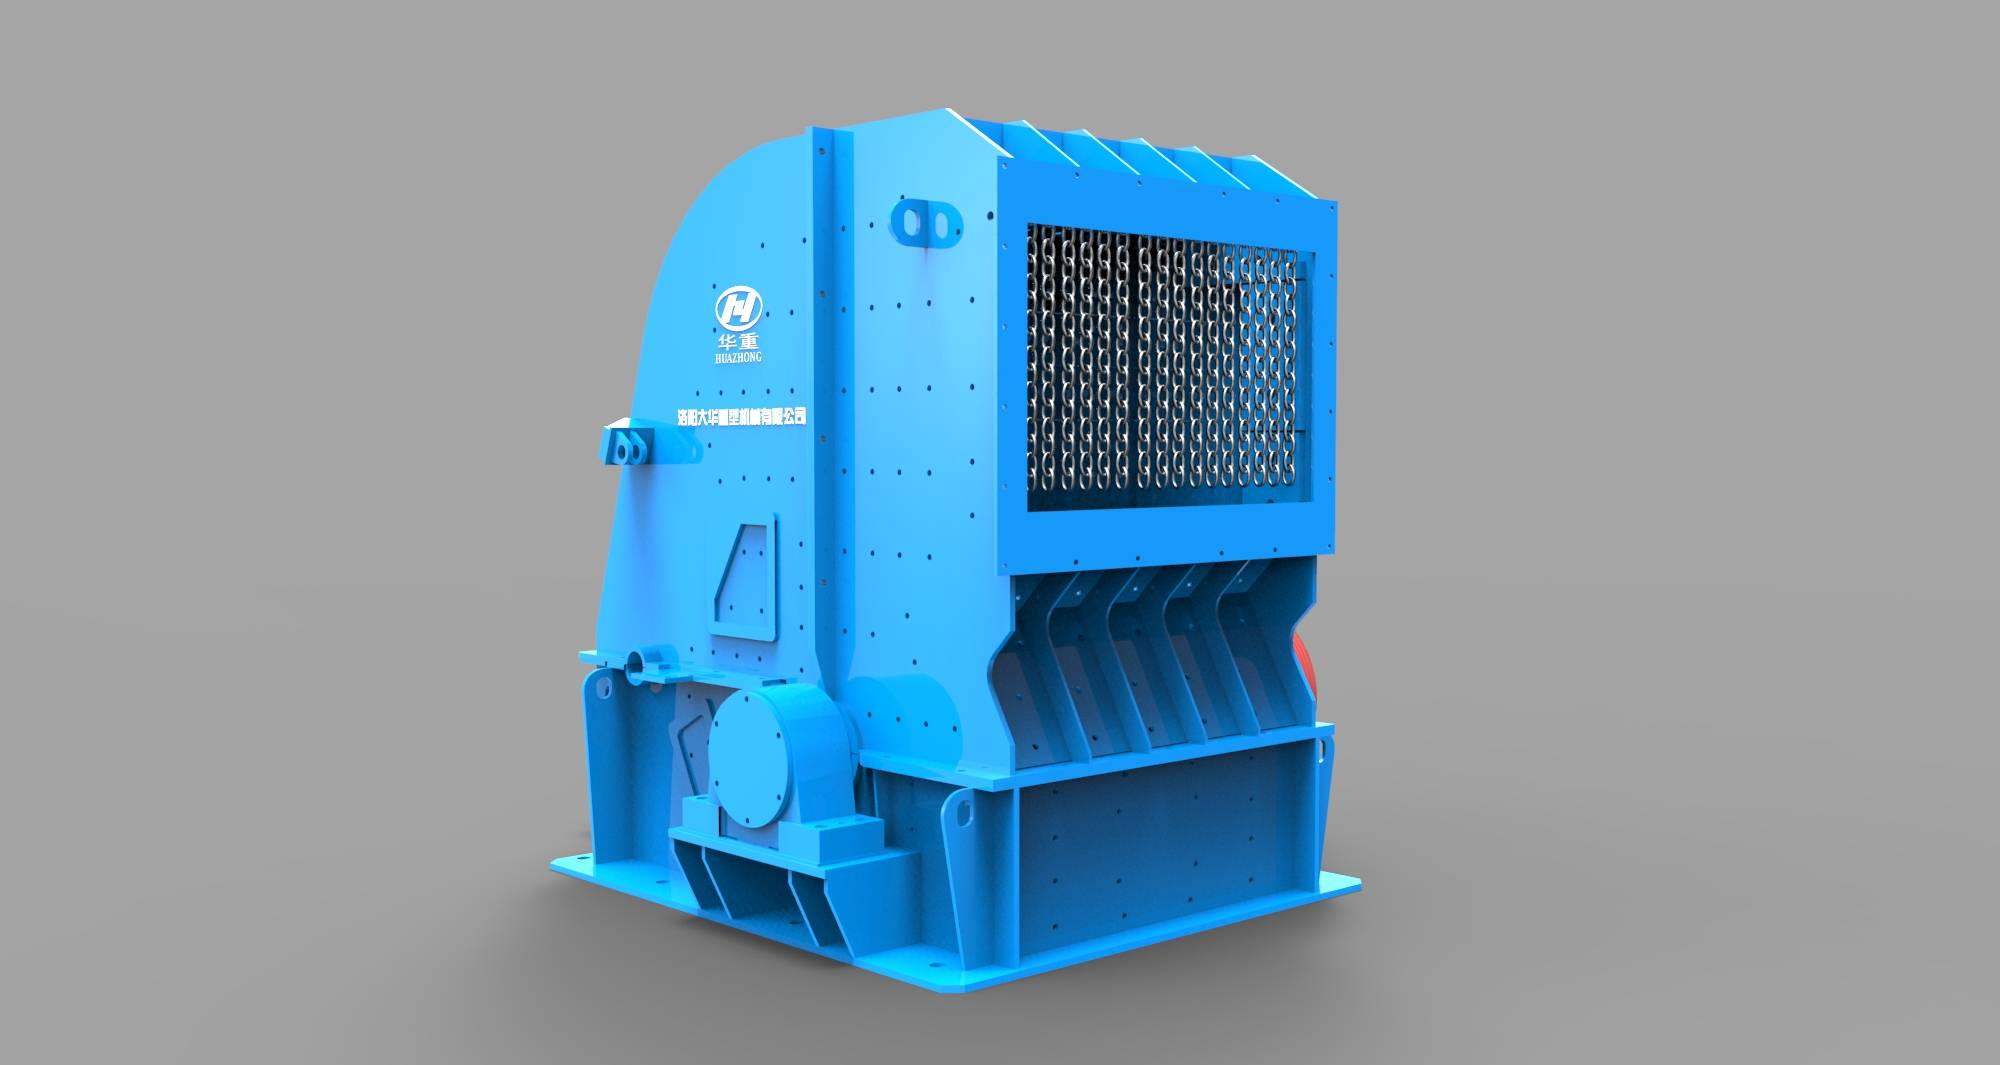 2015 HUAZN crusher series PFQwidely used in electricity, water, highway artificial aggregate crushin